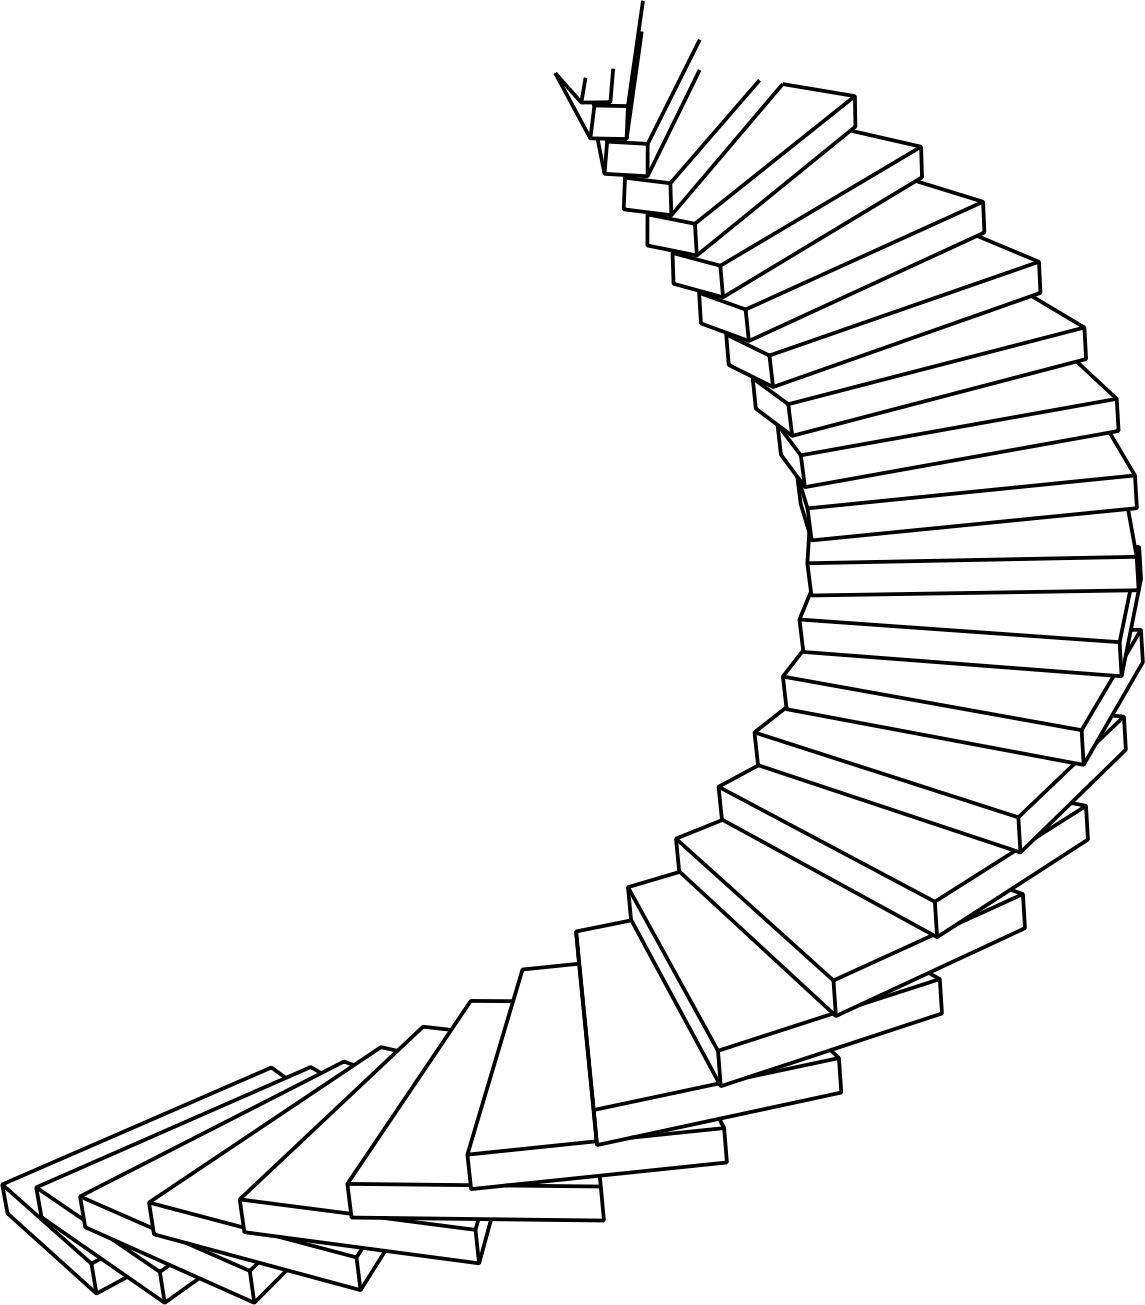 Up clipart staircase. Spiral drawing at getdrawings